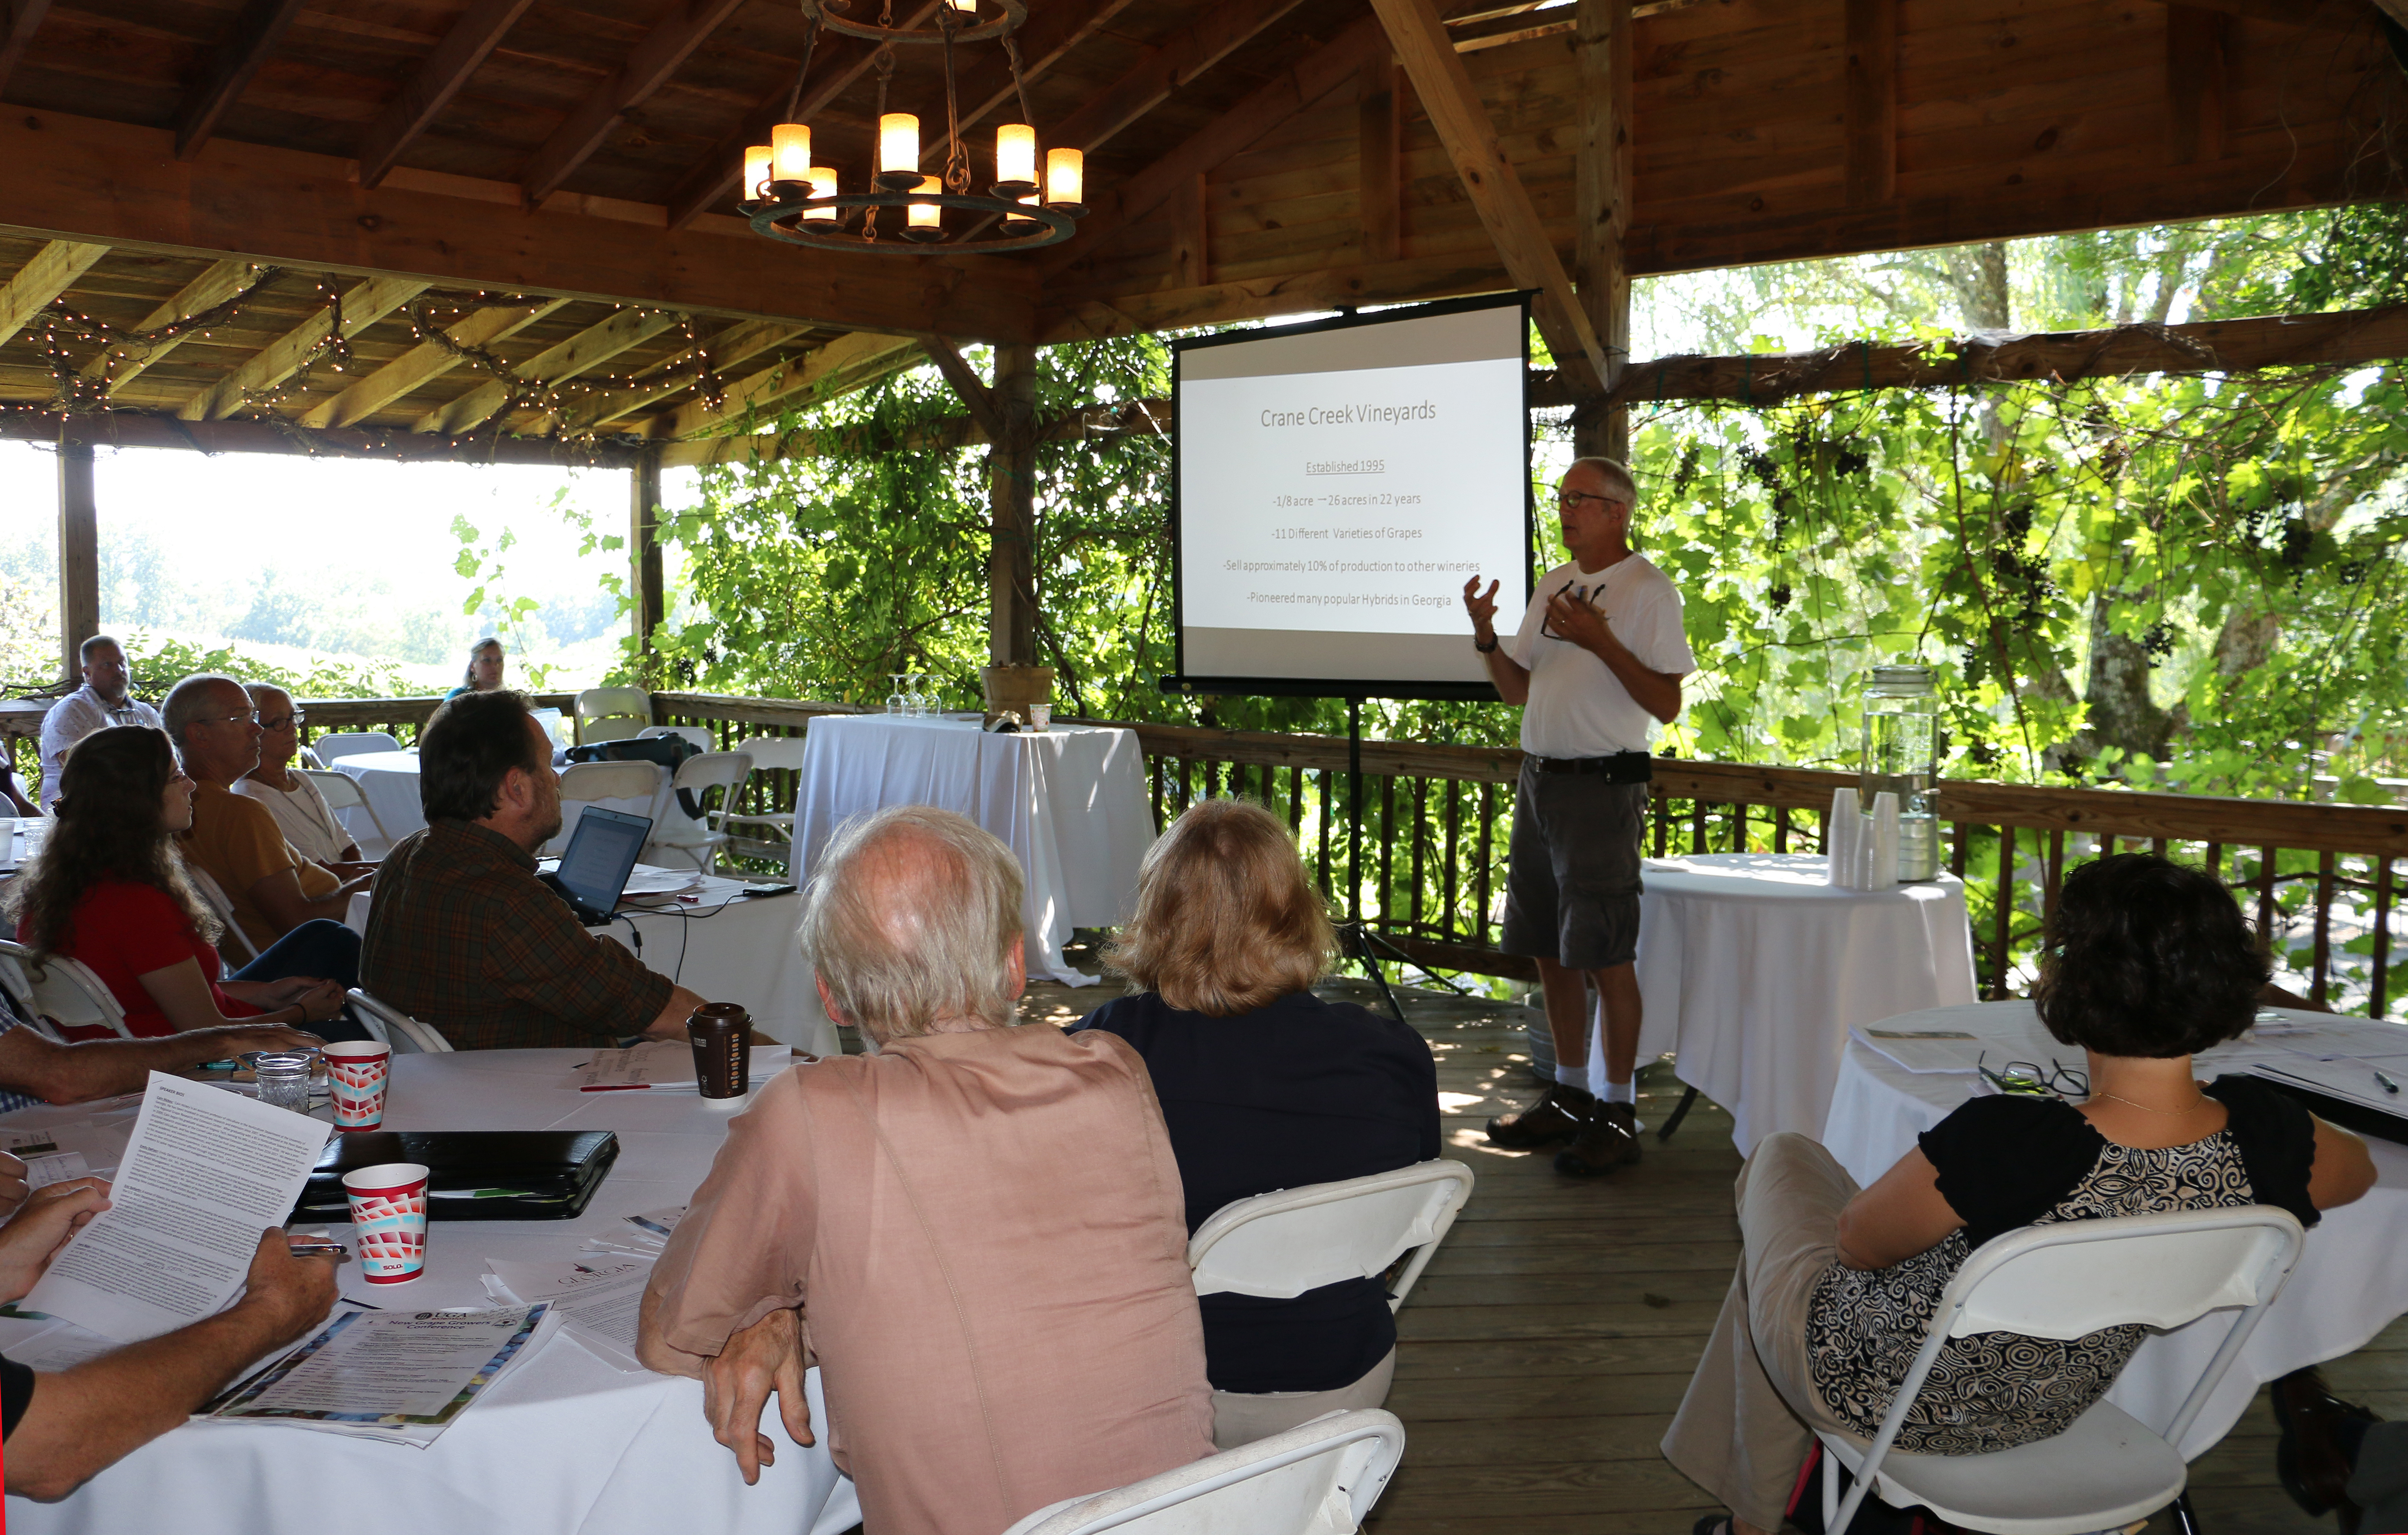 Eric Seifarth, who started Crane Creek Vineyards in 1995 and now produces about 4,200 cases of wine a year, warns and encourages fledgling grape growers at UGA Extension's Beginning Grape Growers Conference in Young Harris, Georgia.